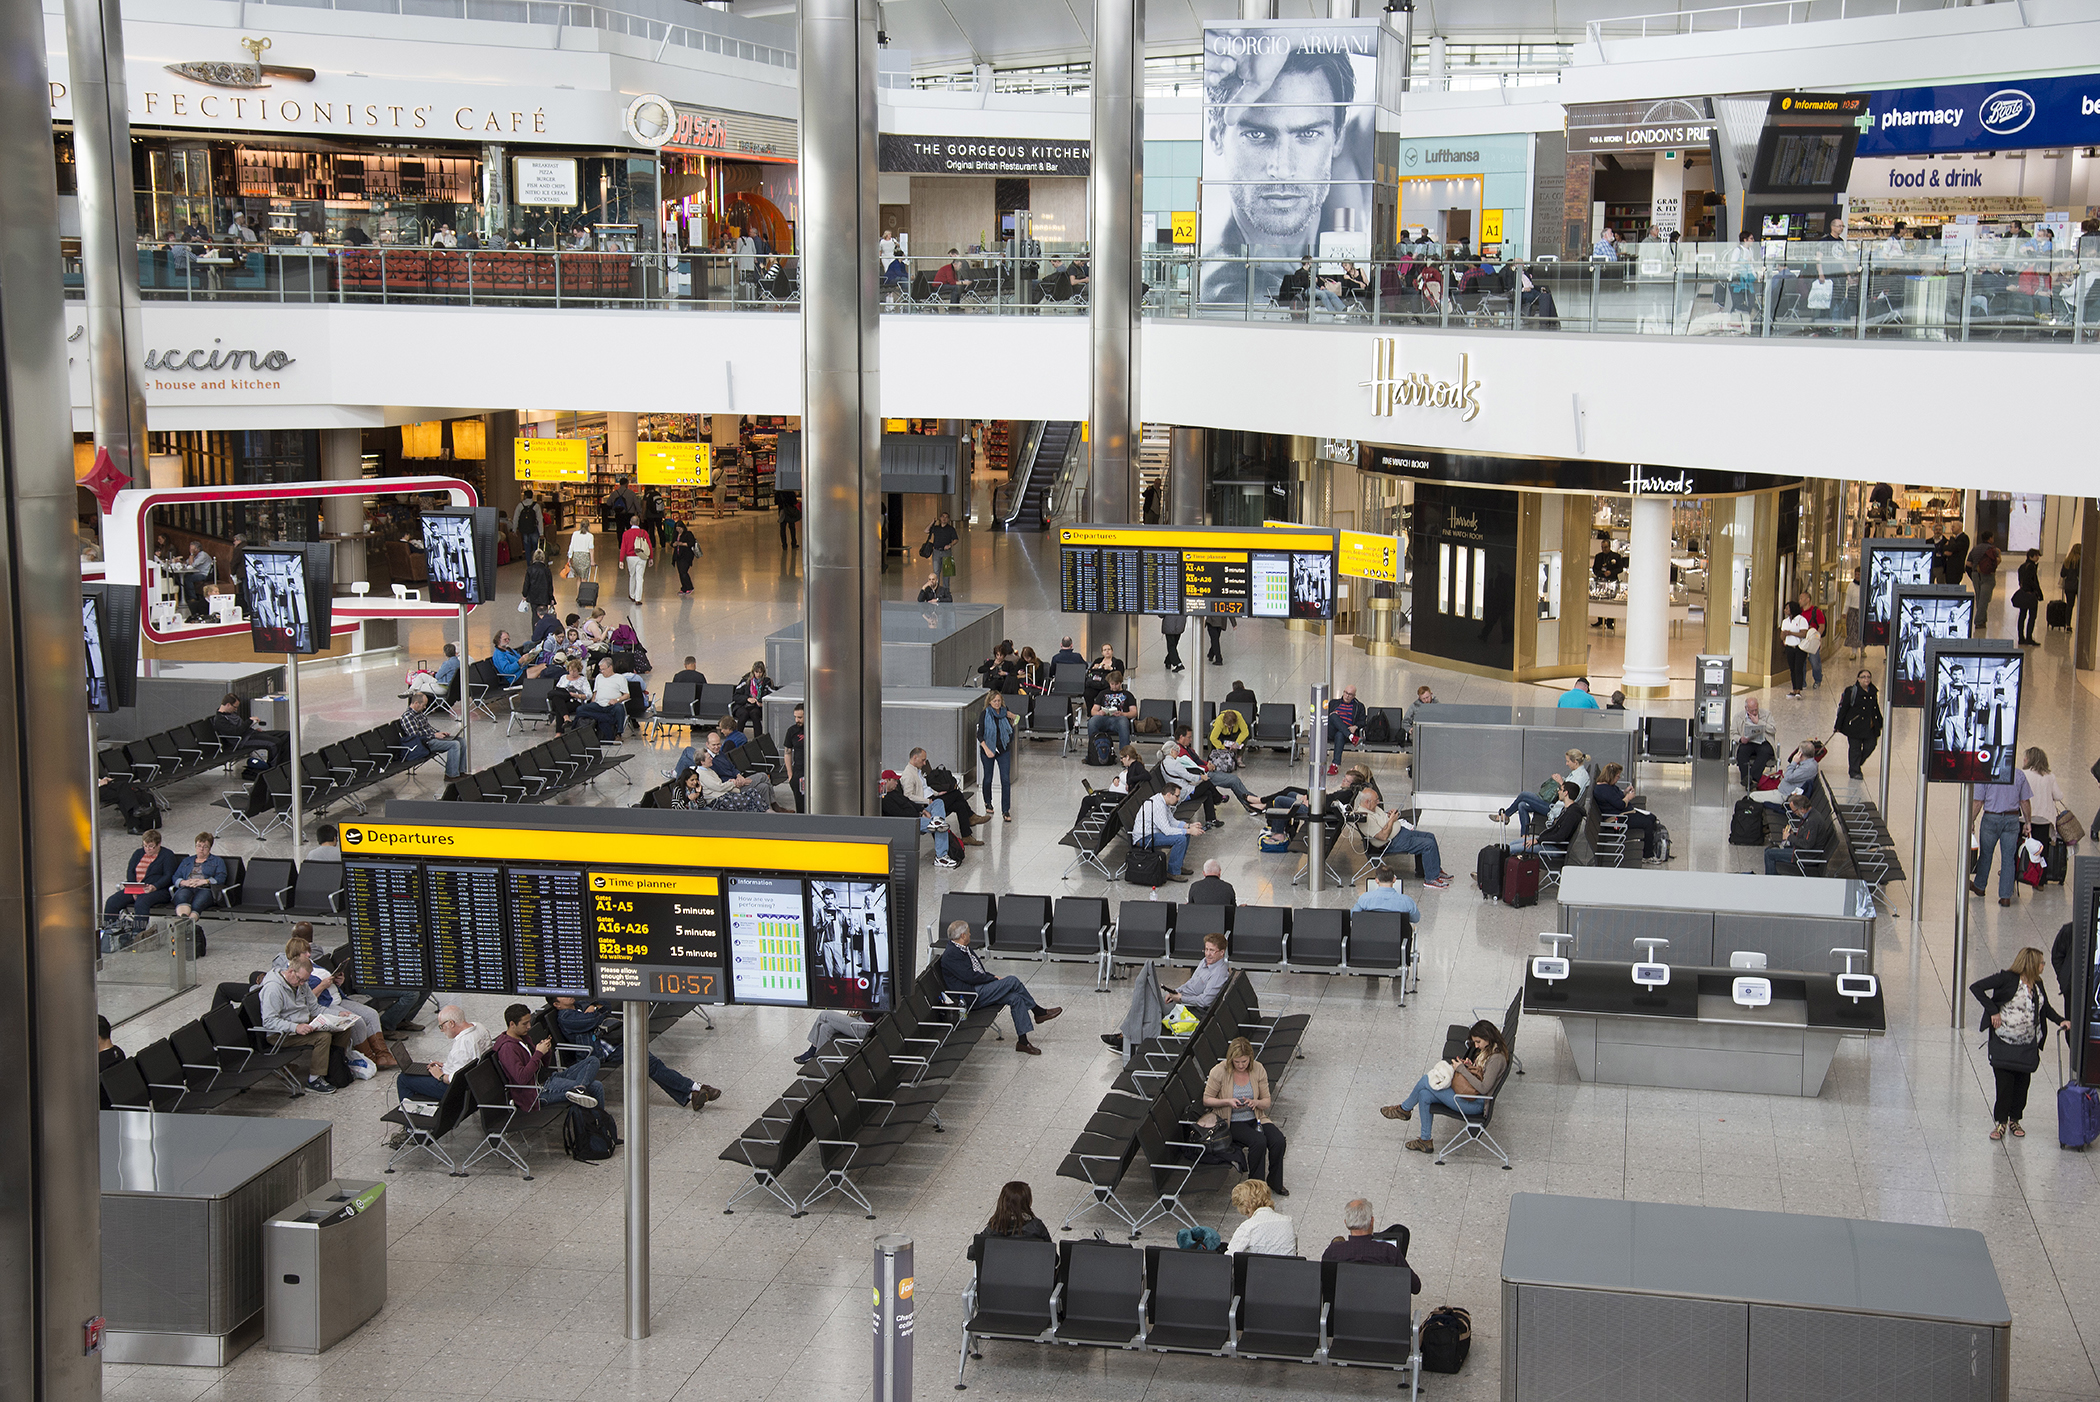 Terminal 2 interior of building at London Heathrow Airport UK.